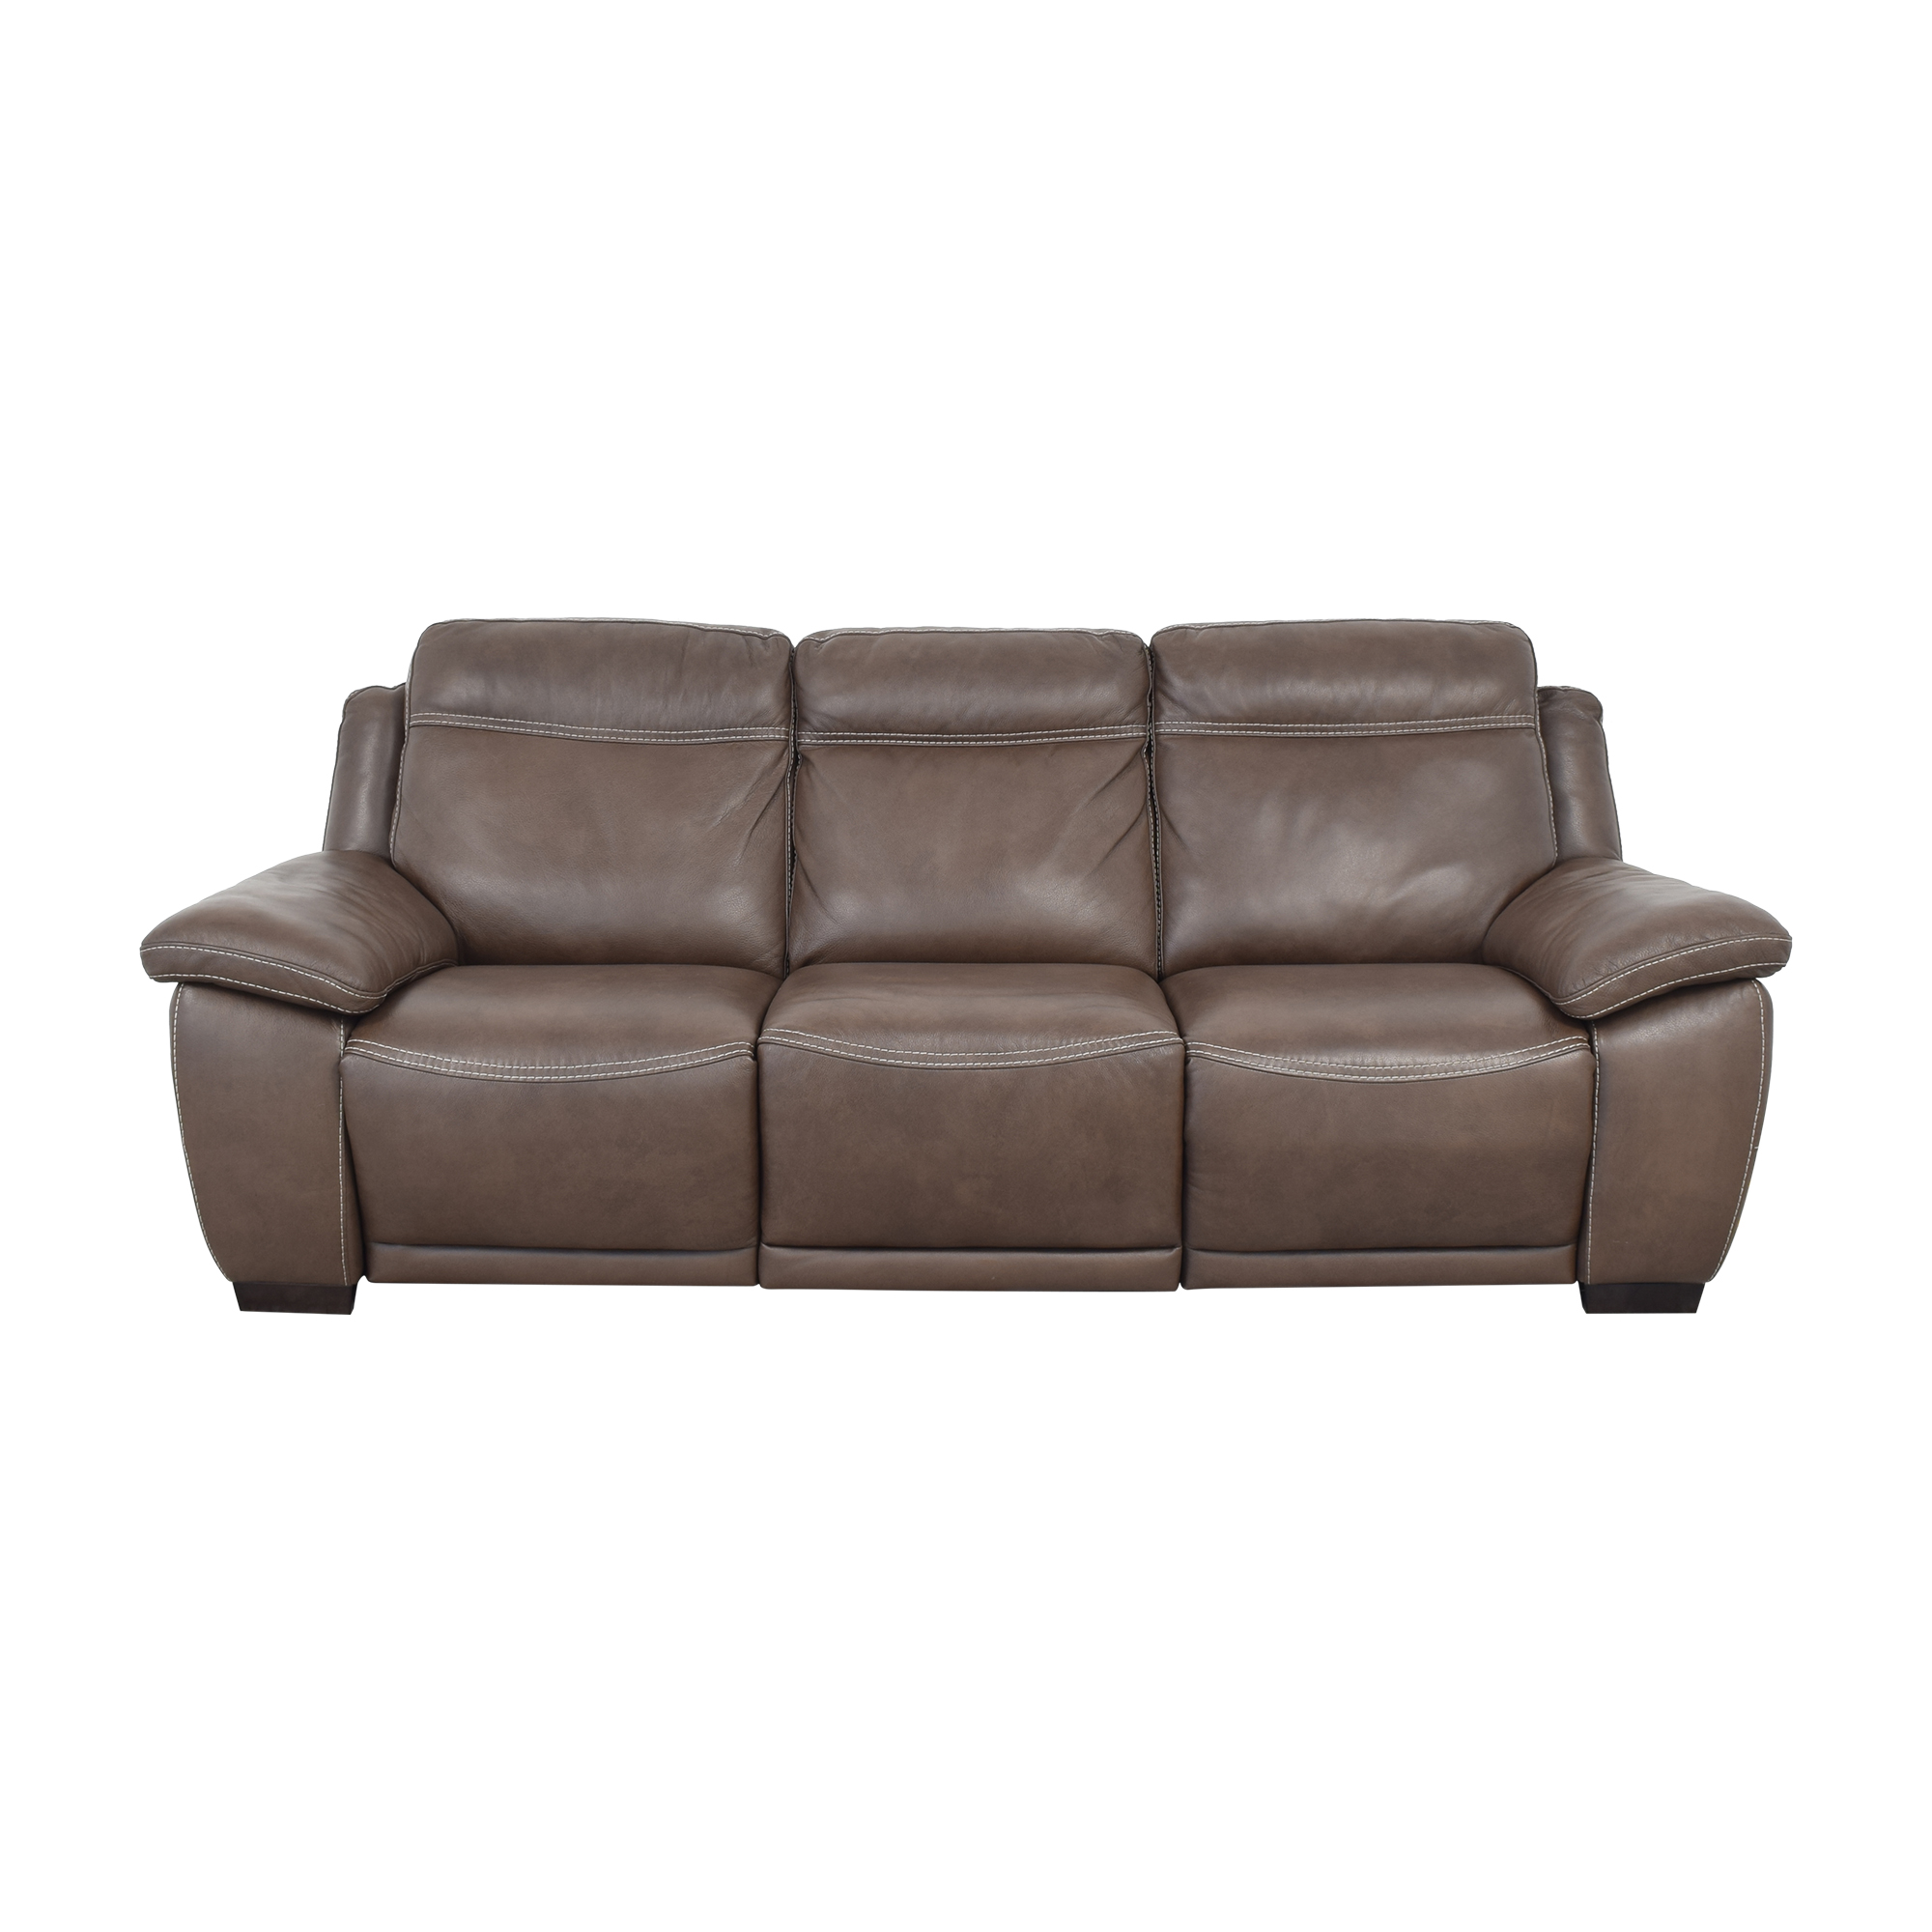 Raymour & Flanigan Raymour & Flanigan Sofa with Two Recliners Classic Sofas